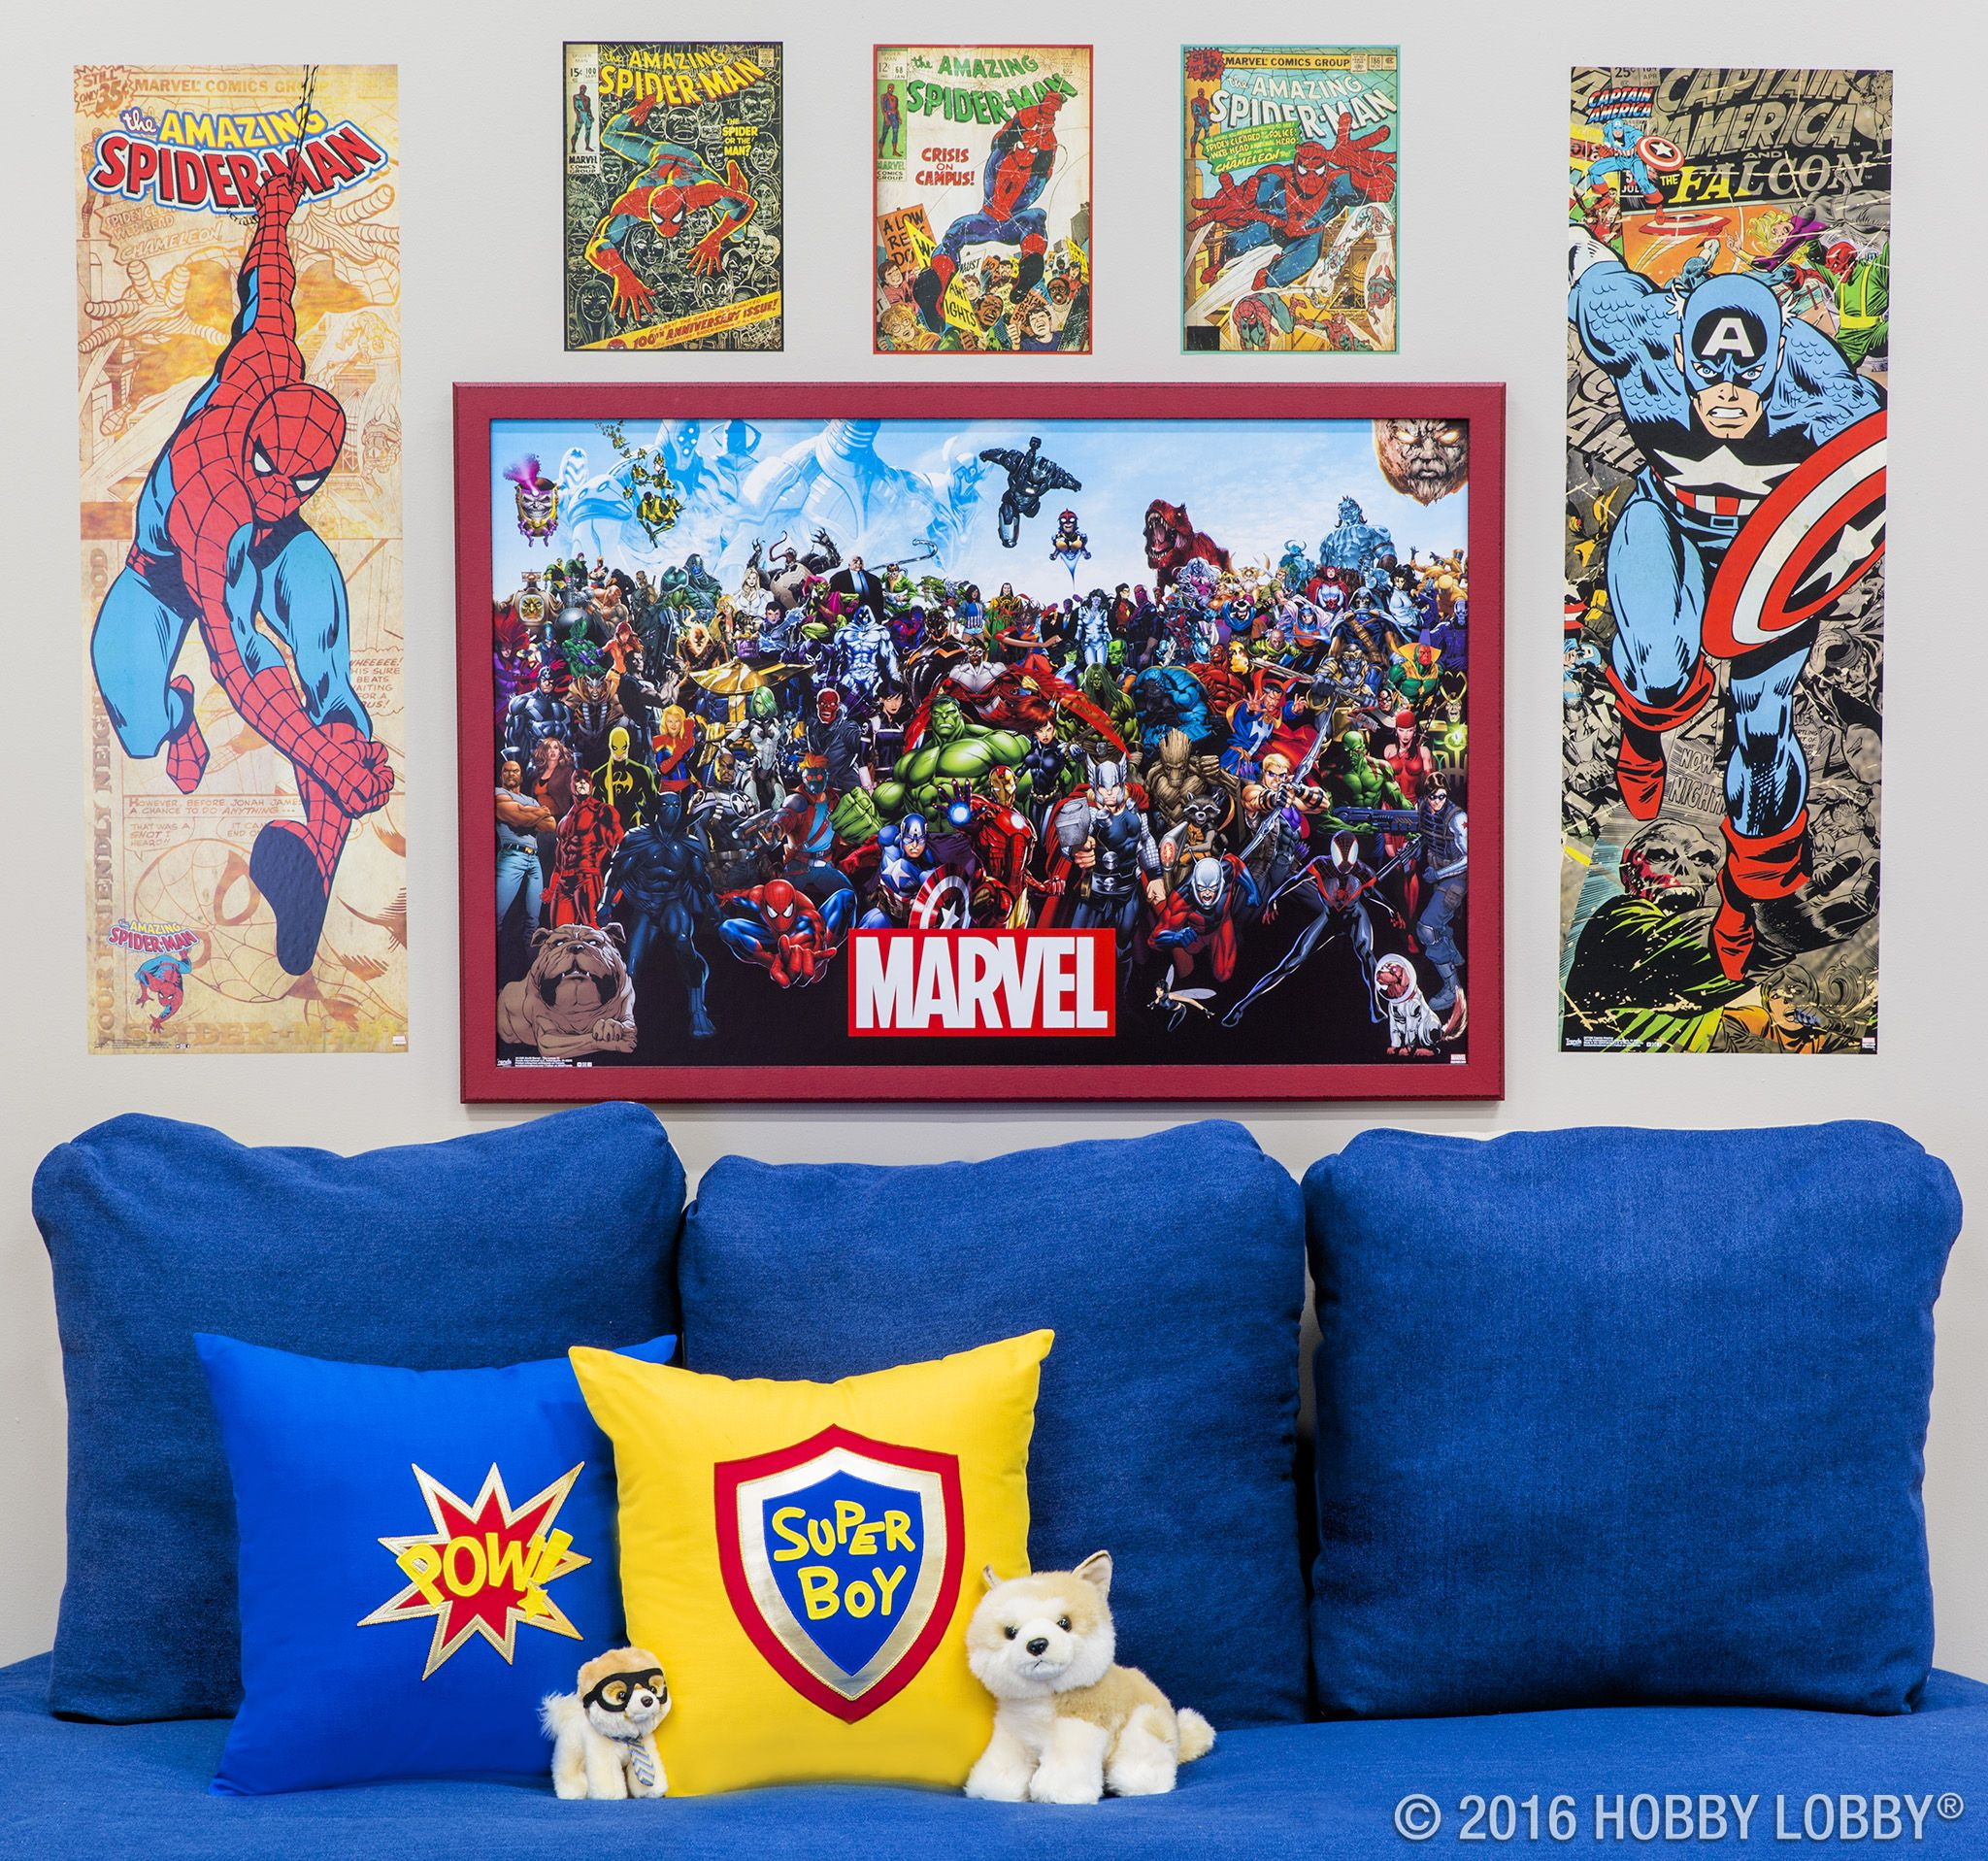 Give Your Little Superhero An Adventure-filled, Action